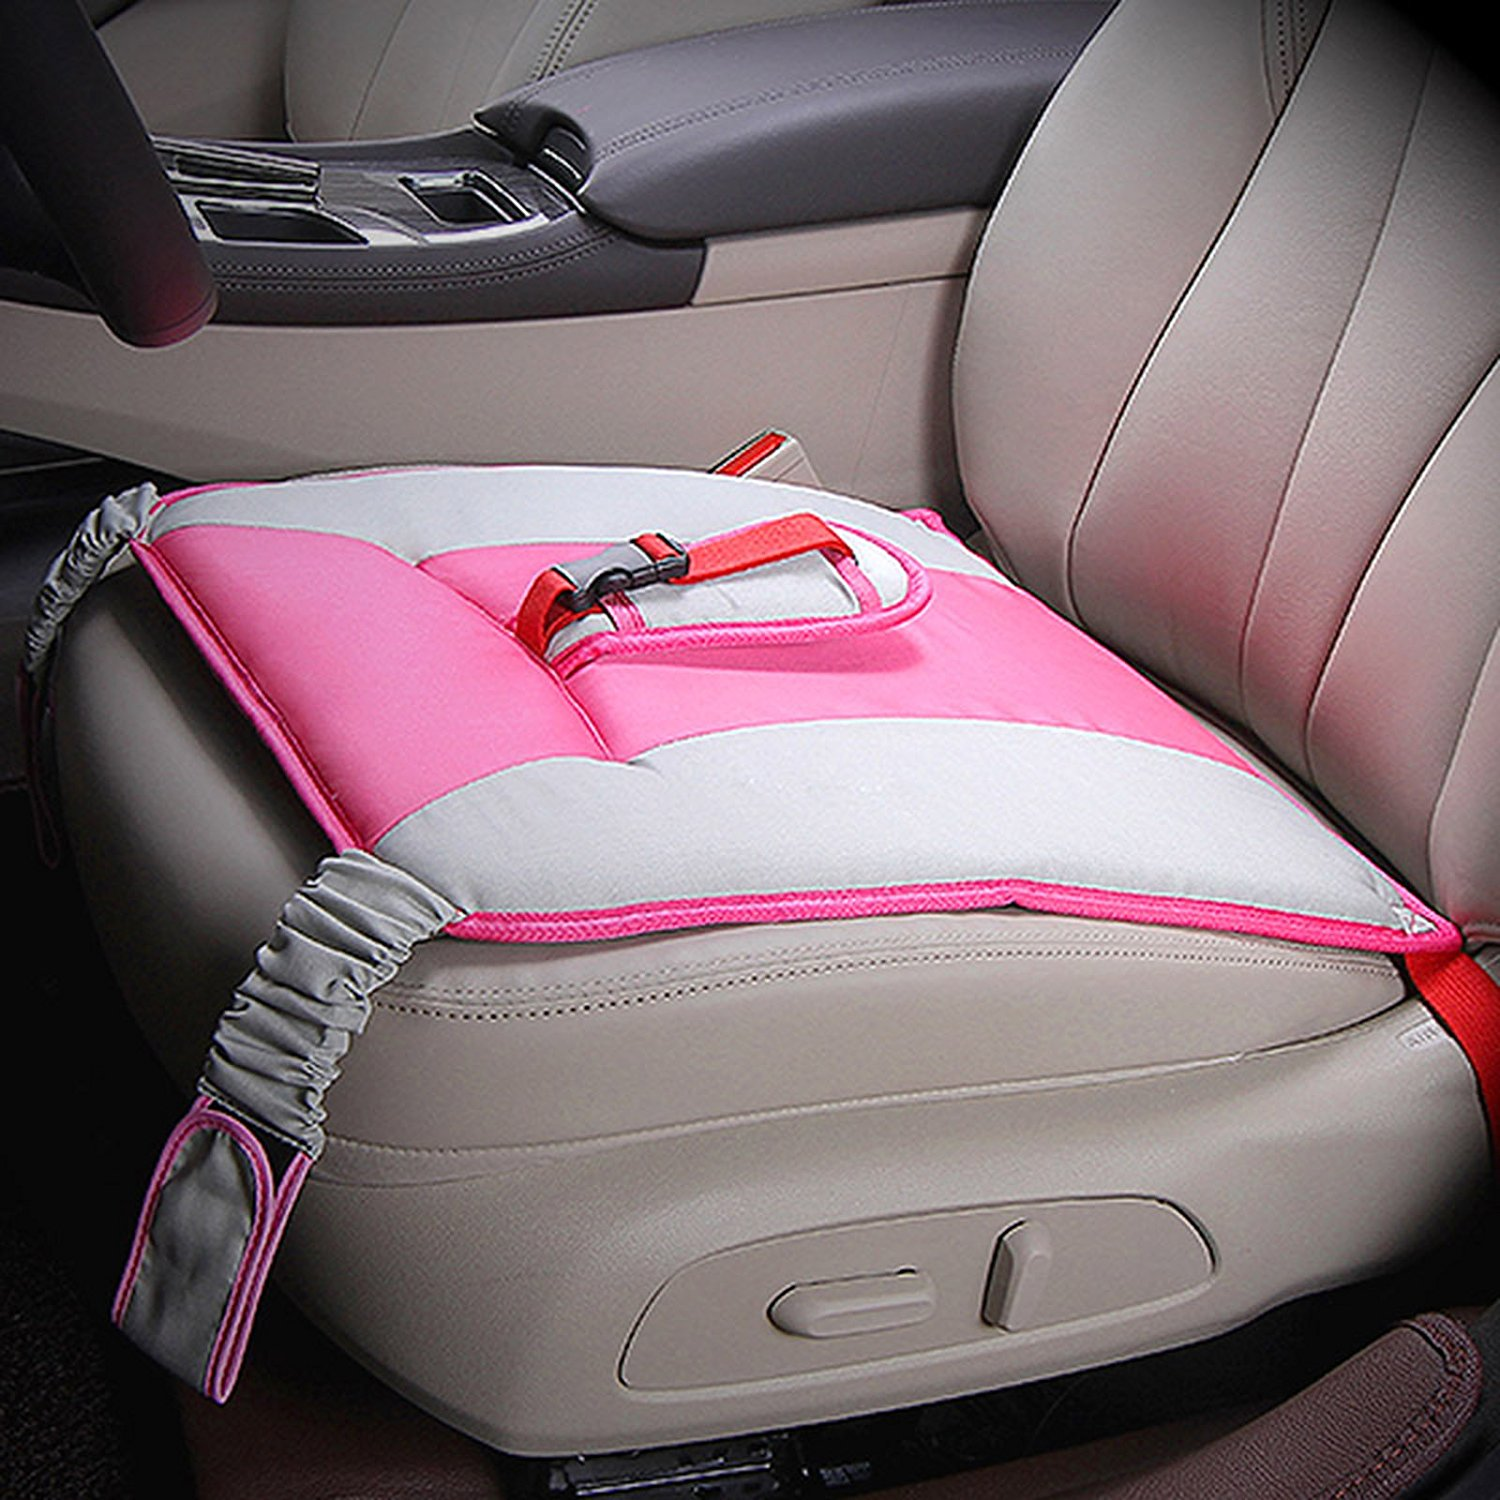 Campstoor Special Car Safety Cushion For Pregnant Women